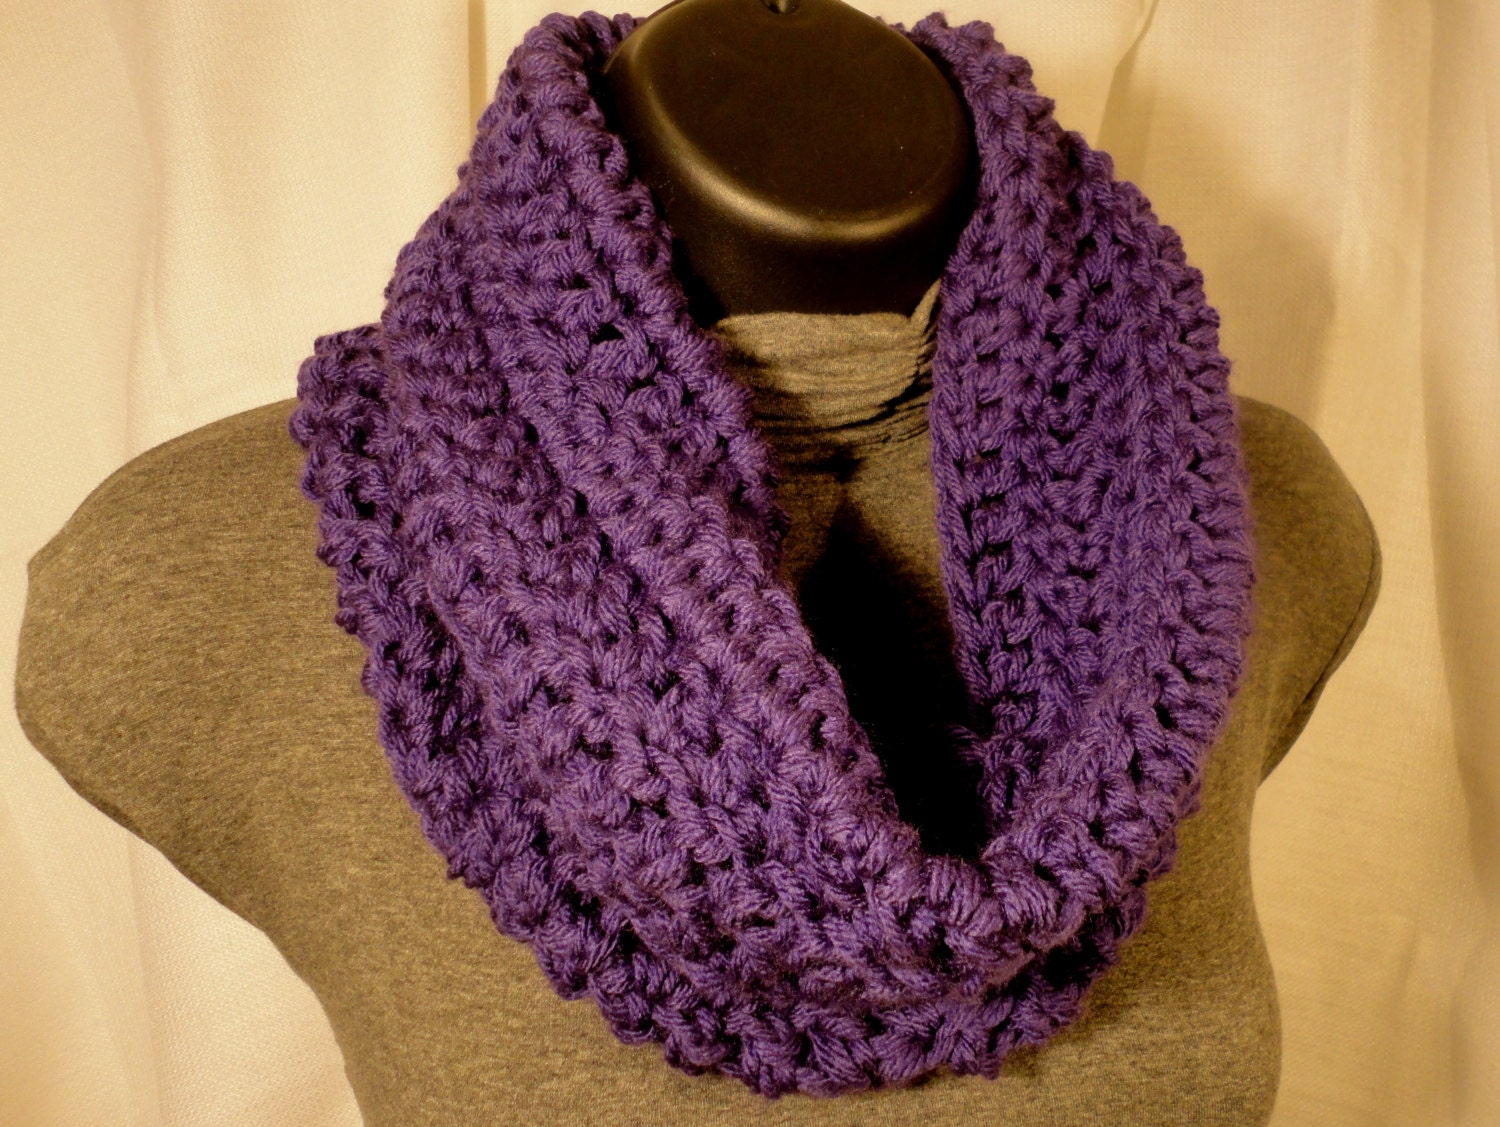 Crochet Scarf Cowl Neck Warmer Purple Grape by VillaYarnDesigns Cowl Neck Scarves Crochet